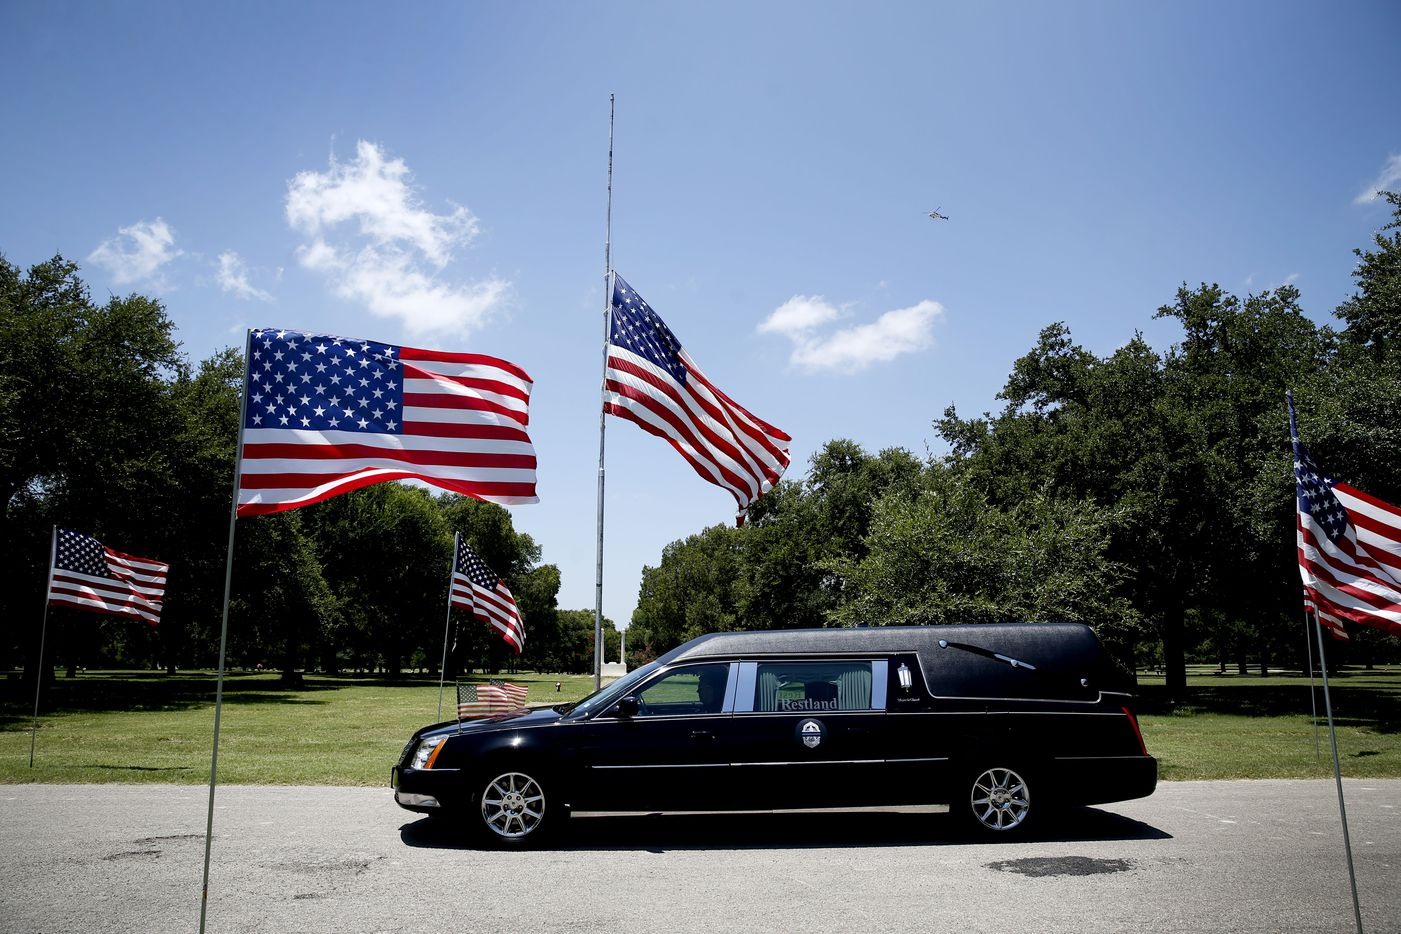 The hearse passes in the funeral procession for the burial for fallen Dallas police officer Lorne Ahrens in the Garden of Honor at Restland Funeral Home and Cemetery in Dallas on July 13, 2016. Ahrens and four other officers were gunned down during an ambush on police in downtown Dallas.